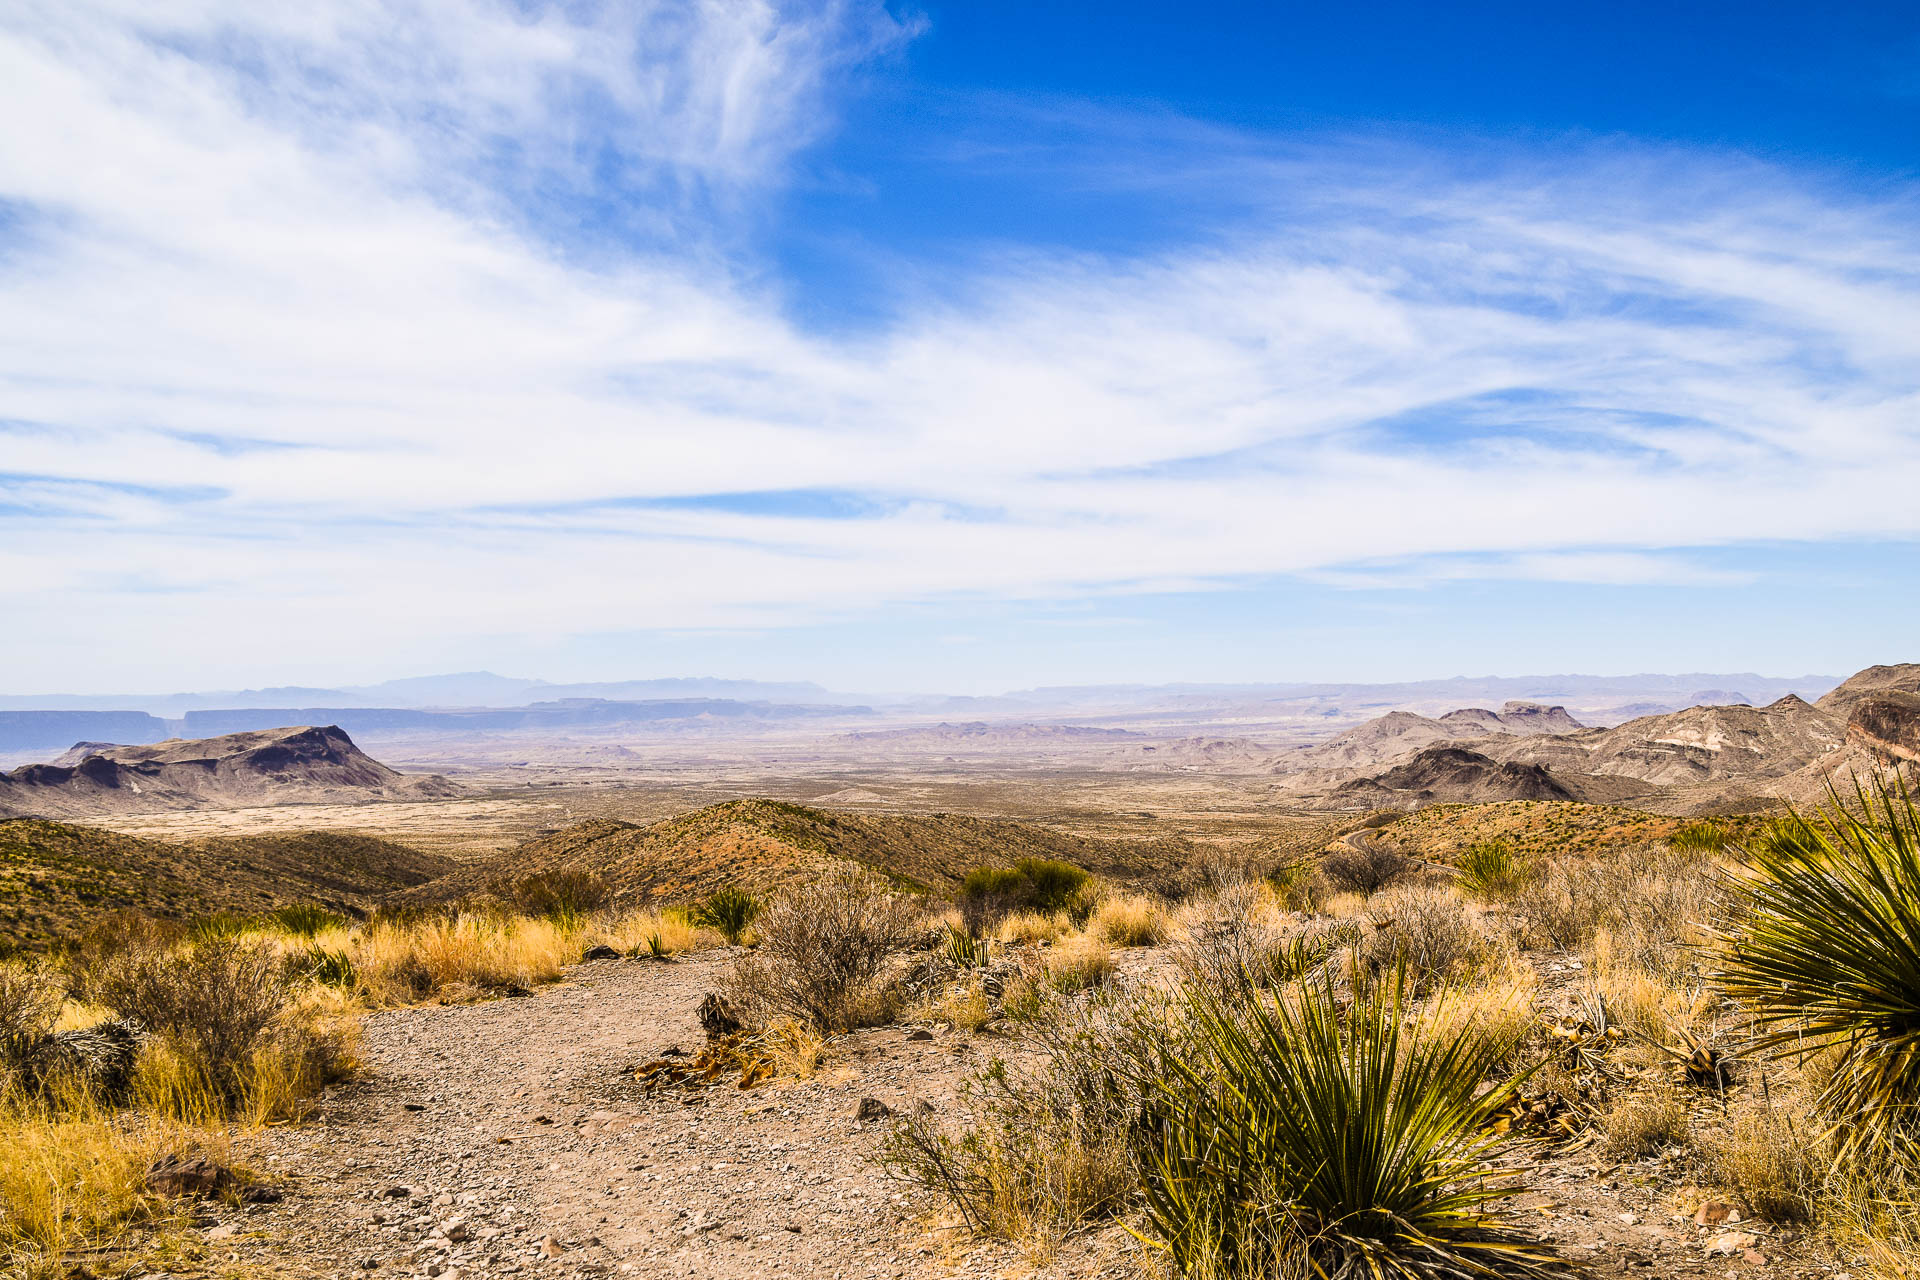 Chihuahuan Desert in Big Bend National Park